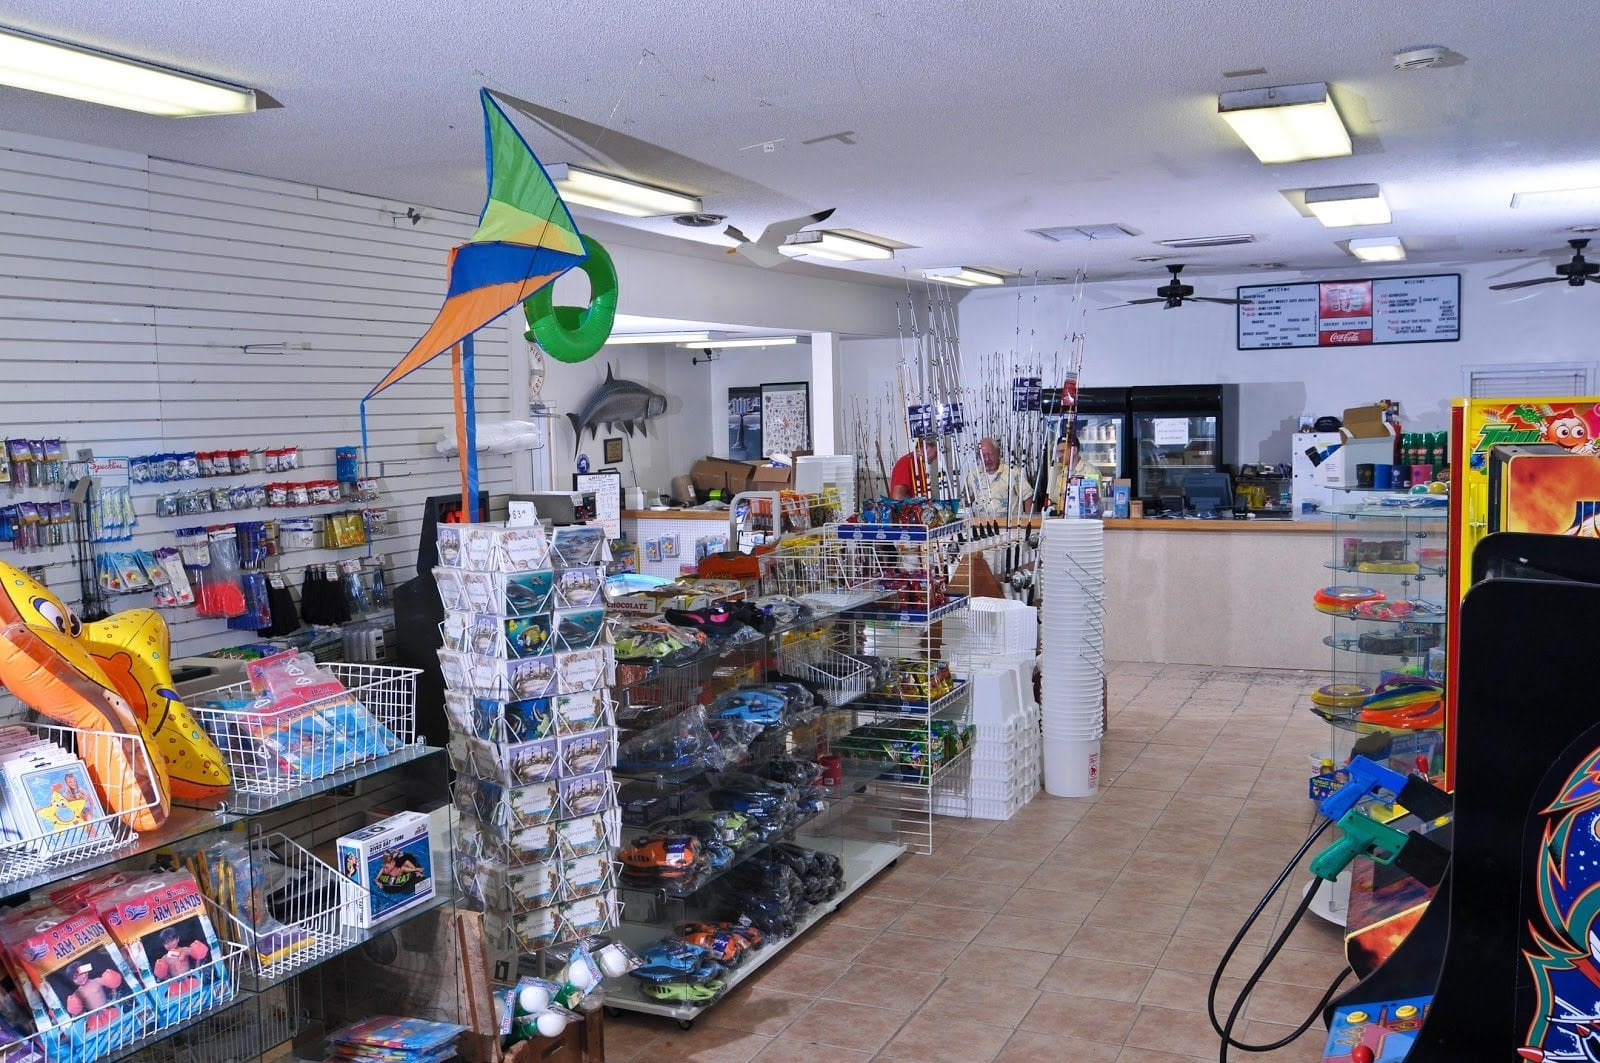 A tackle shop with rods and fishing gear.